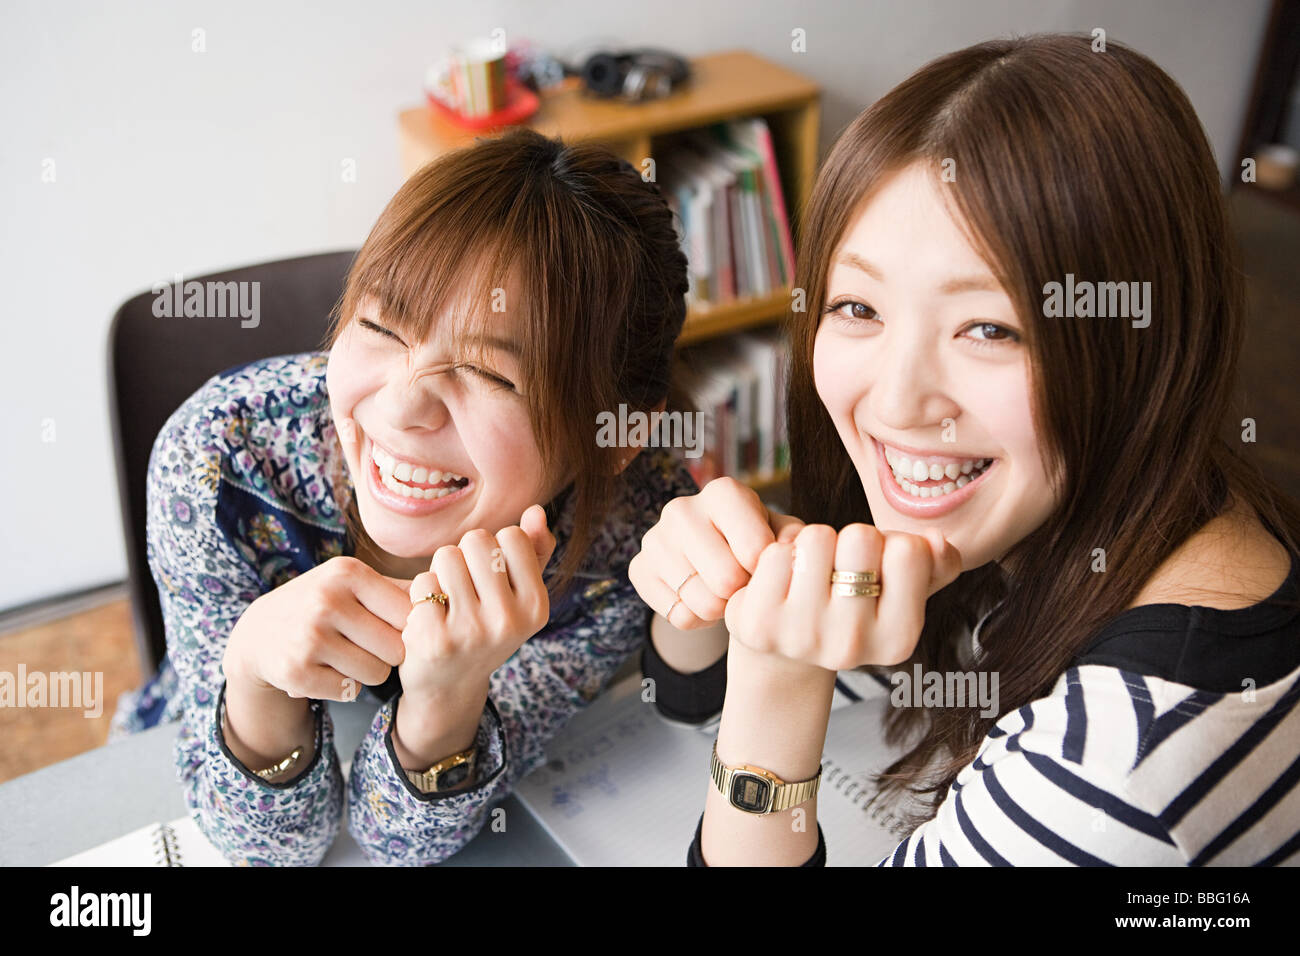 Young women laughing - Stock Image